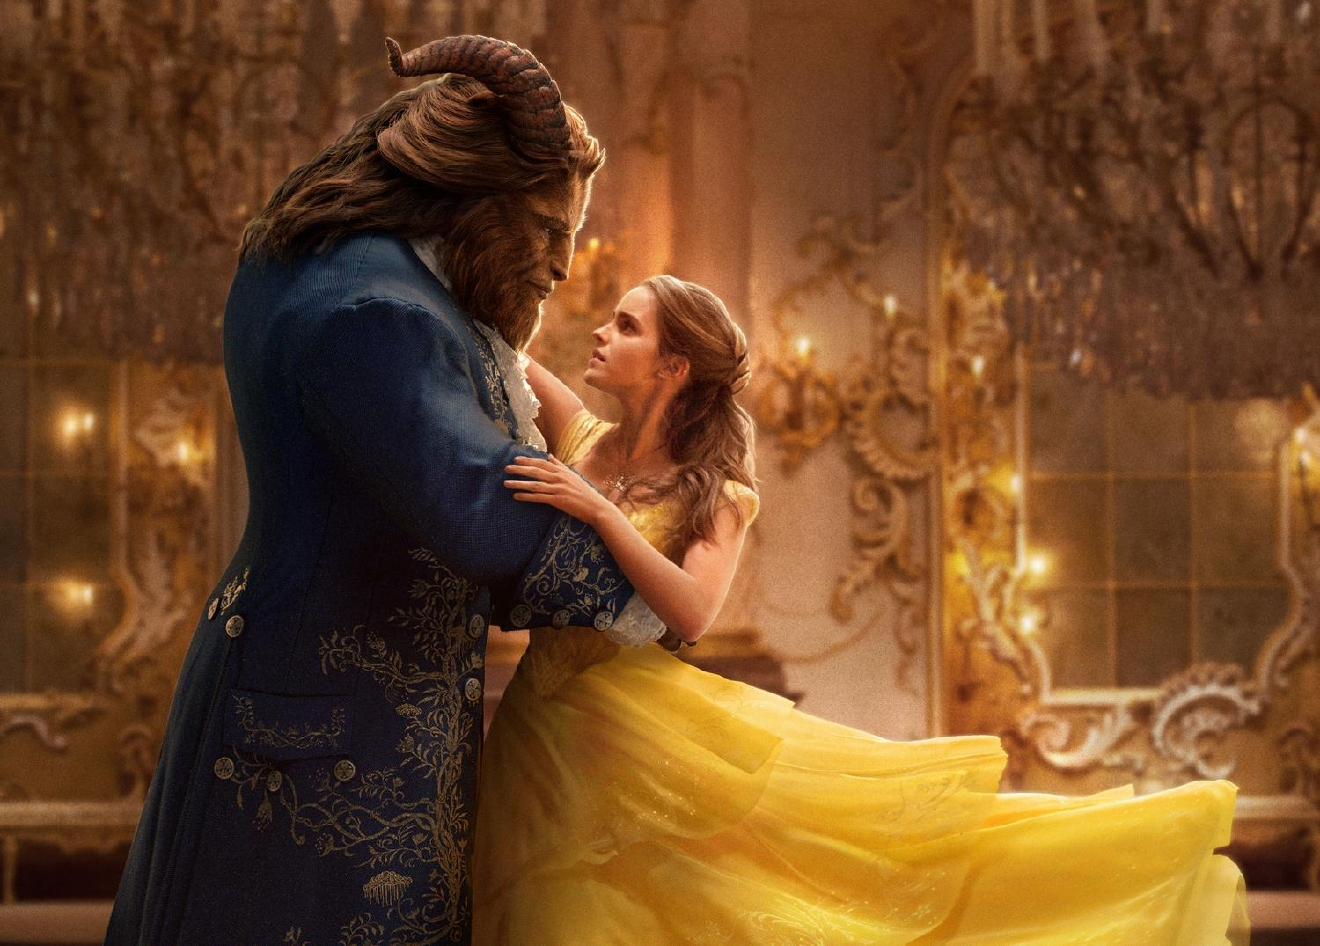 The Beast (Dan Stevens) and Belle (Emma Watson)  in Disney's BEAUTY AND THE BEAST, a live-action adaptation of the studio's animated classic which is a celebration of one of the most beloved stories ever told.